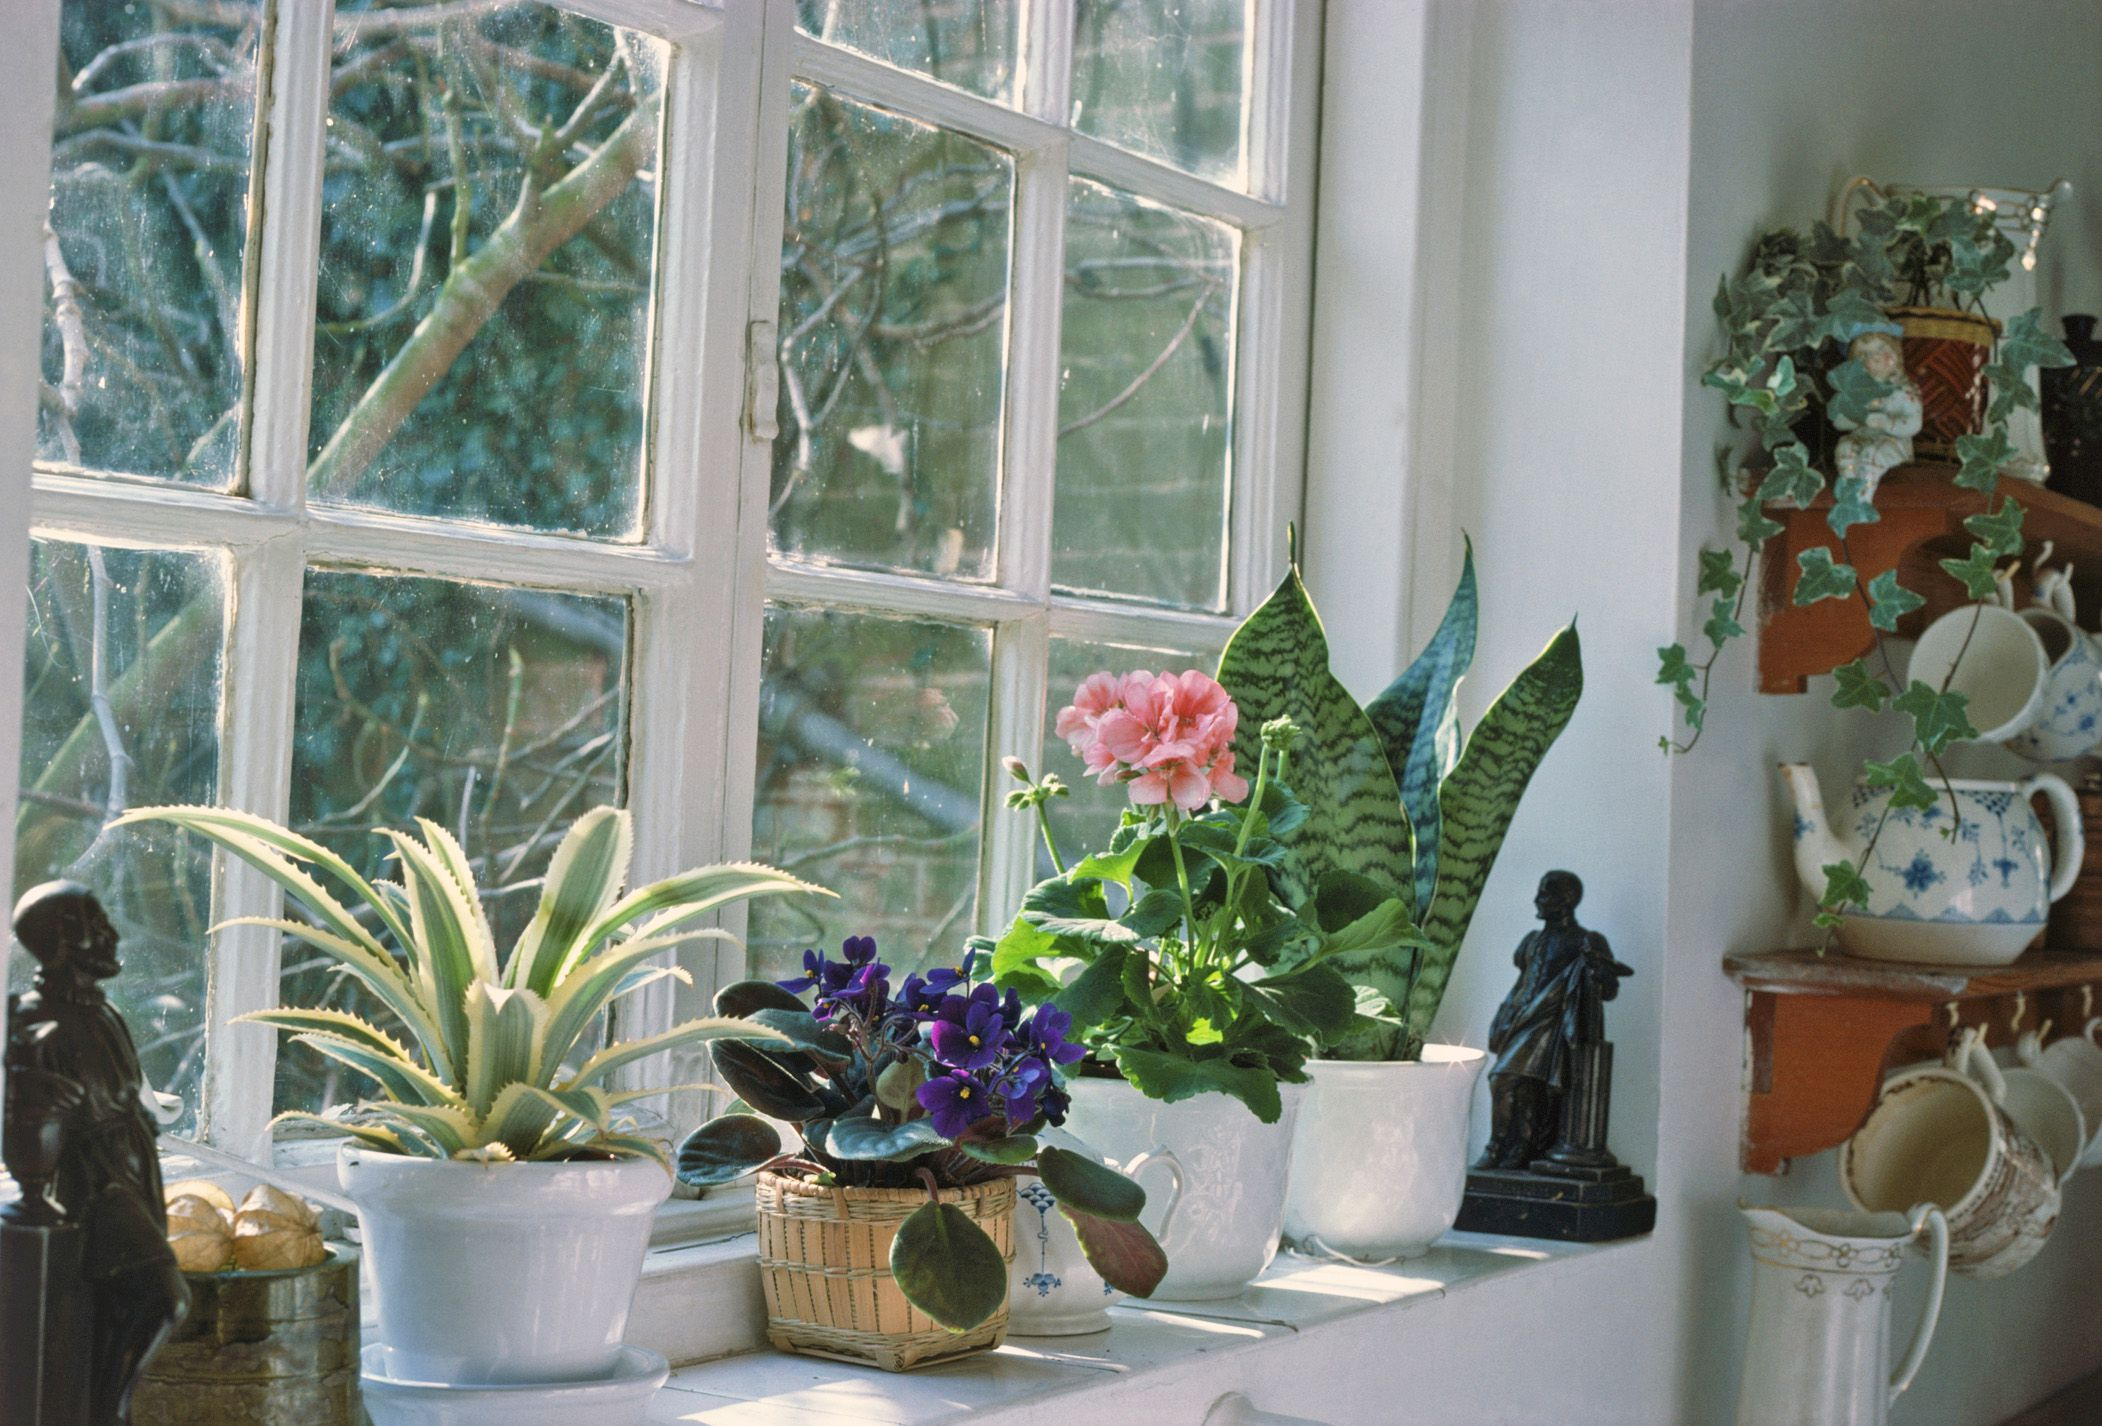 100 Best Tall Indoor Plants Common House Plants Hgtv 6 Houseplants That Will Survive Your